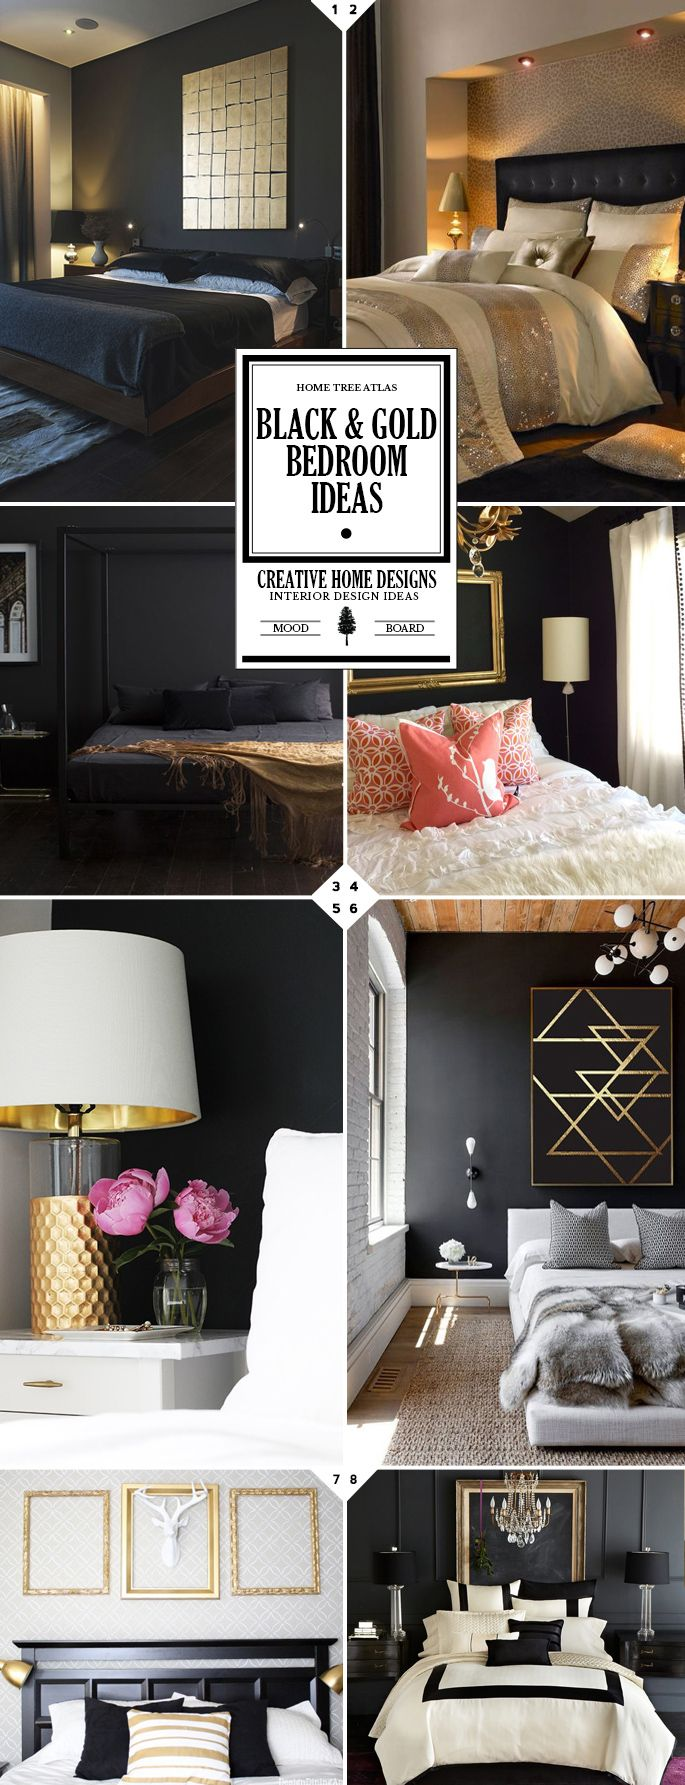 Bedroom designs ideas black and white - A Touch Of Luxury Black And Gold Bedroom Ideas More